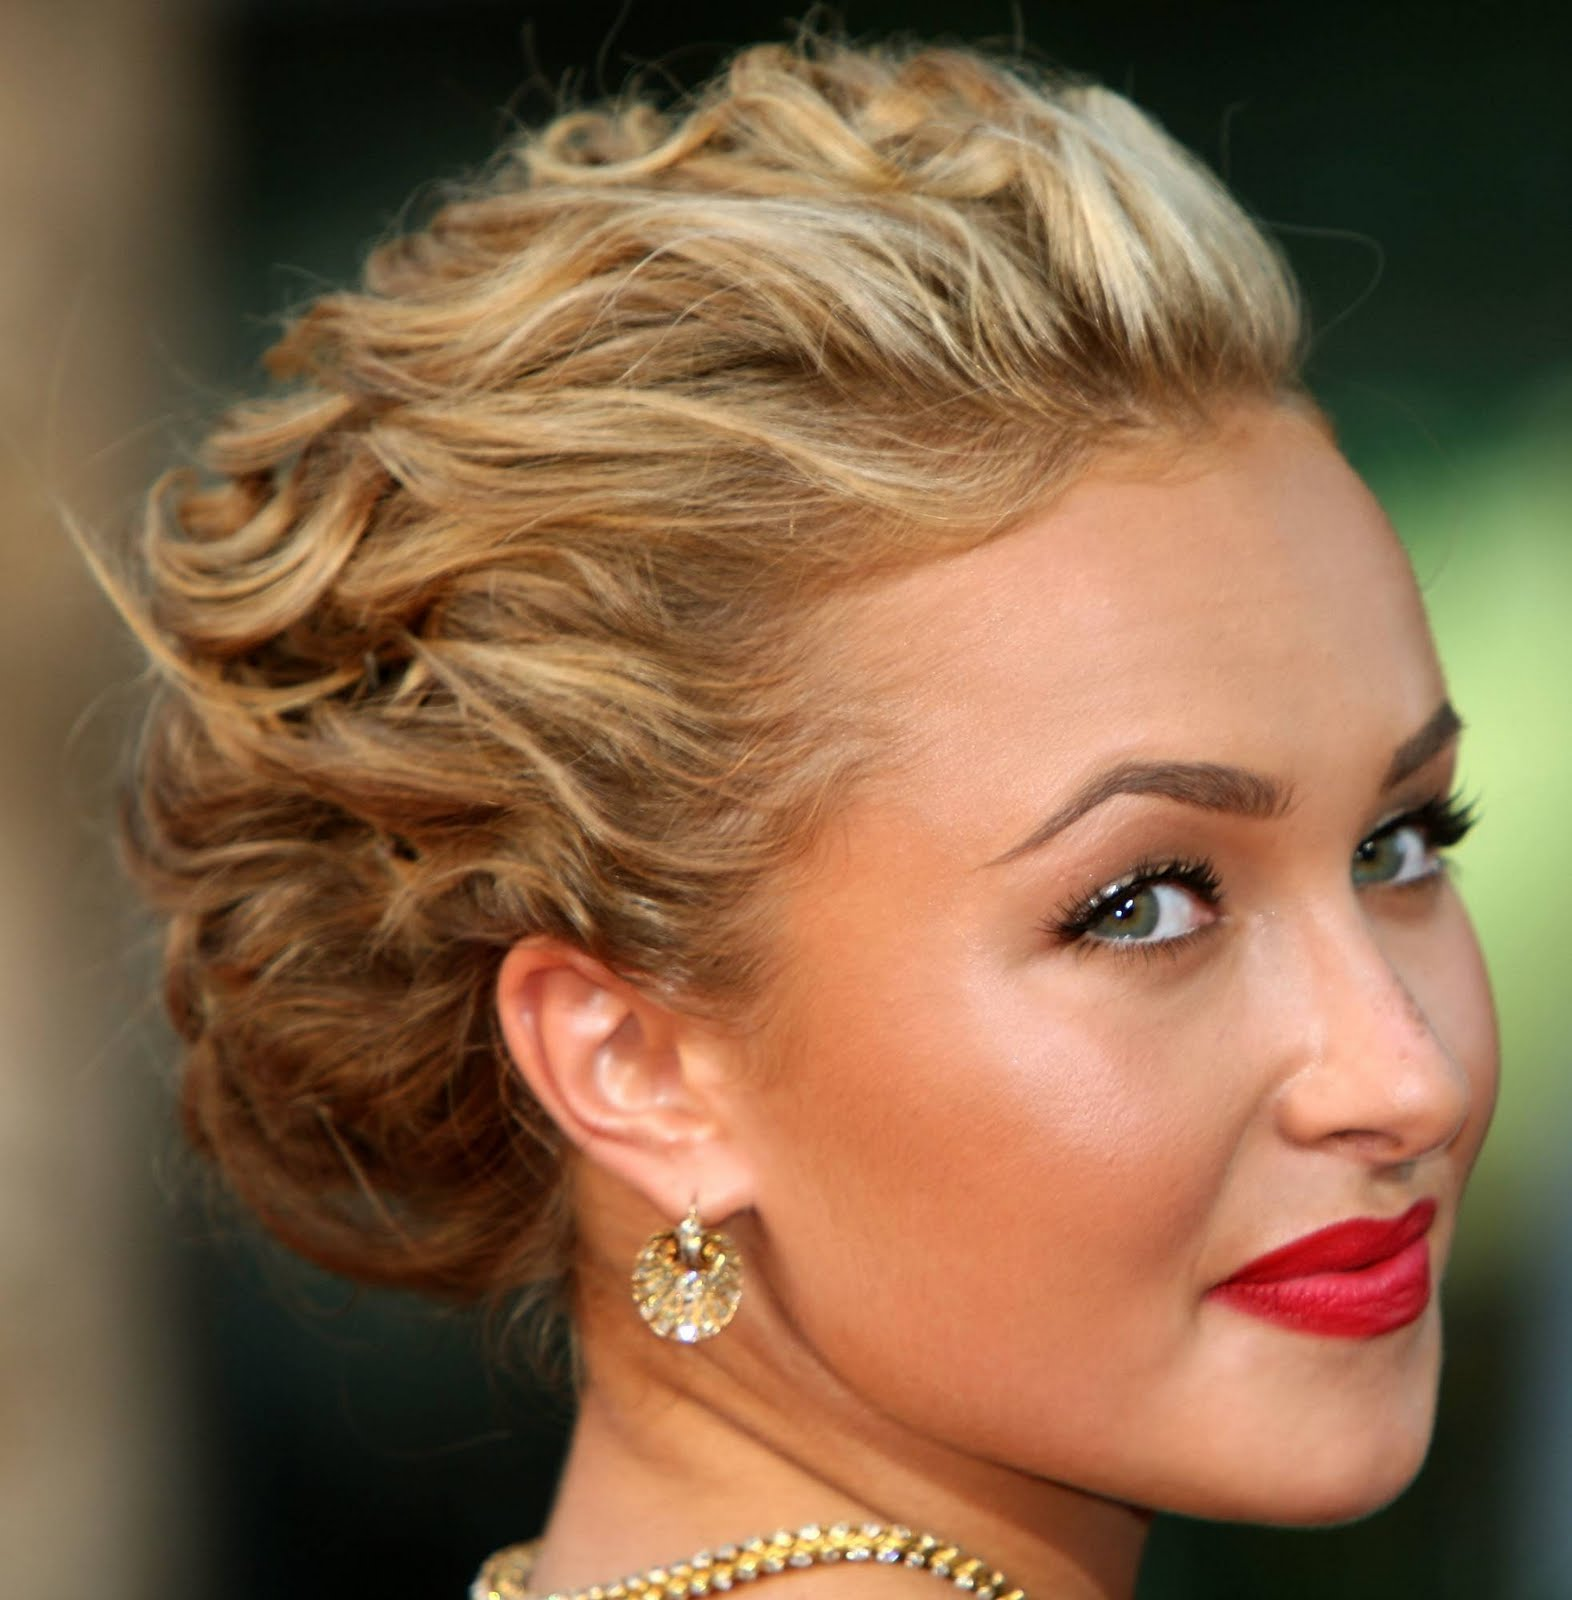 Admirable Updo Short Curly Hairstyles Best Hairstyles 2017 Short Hairstyles Gunalazisus